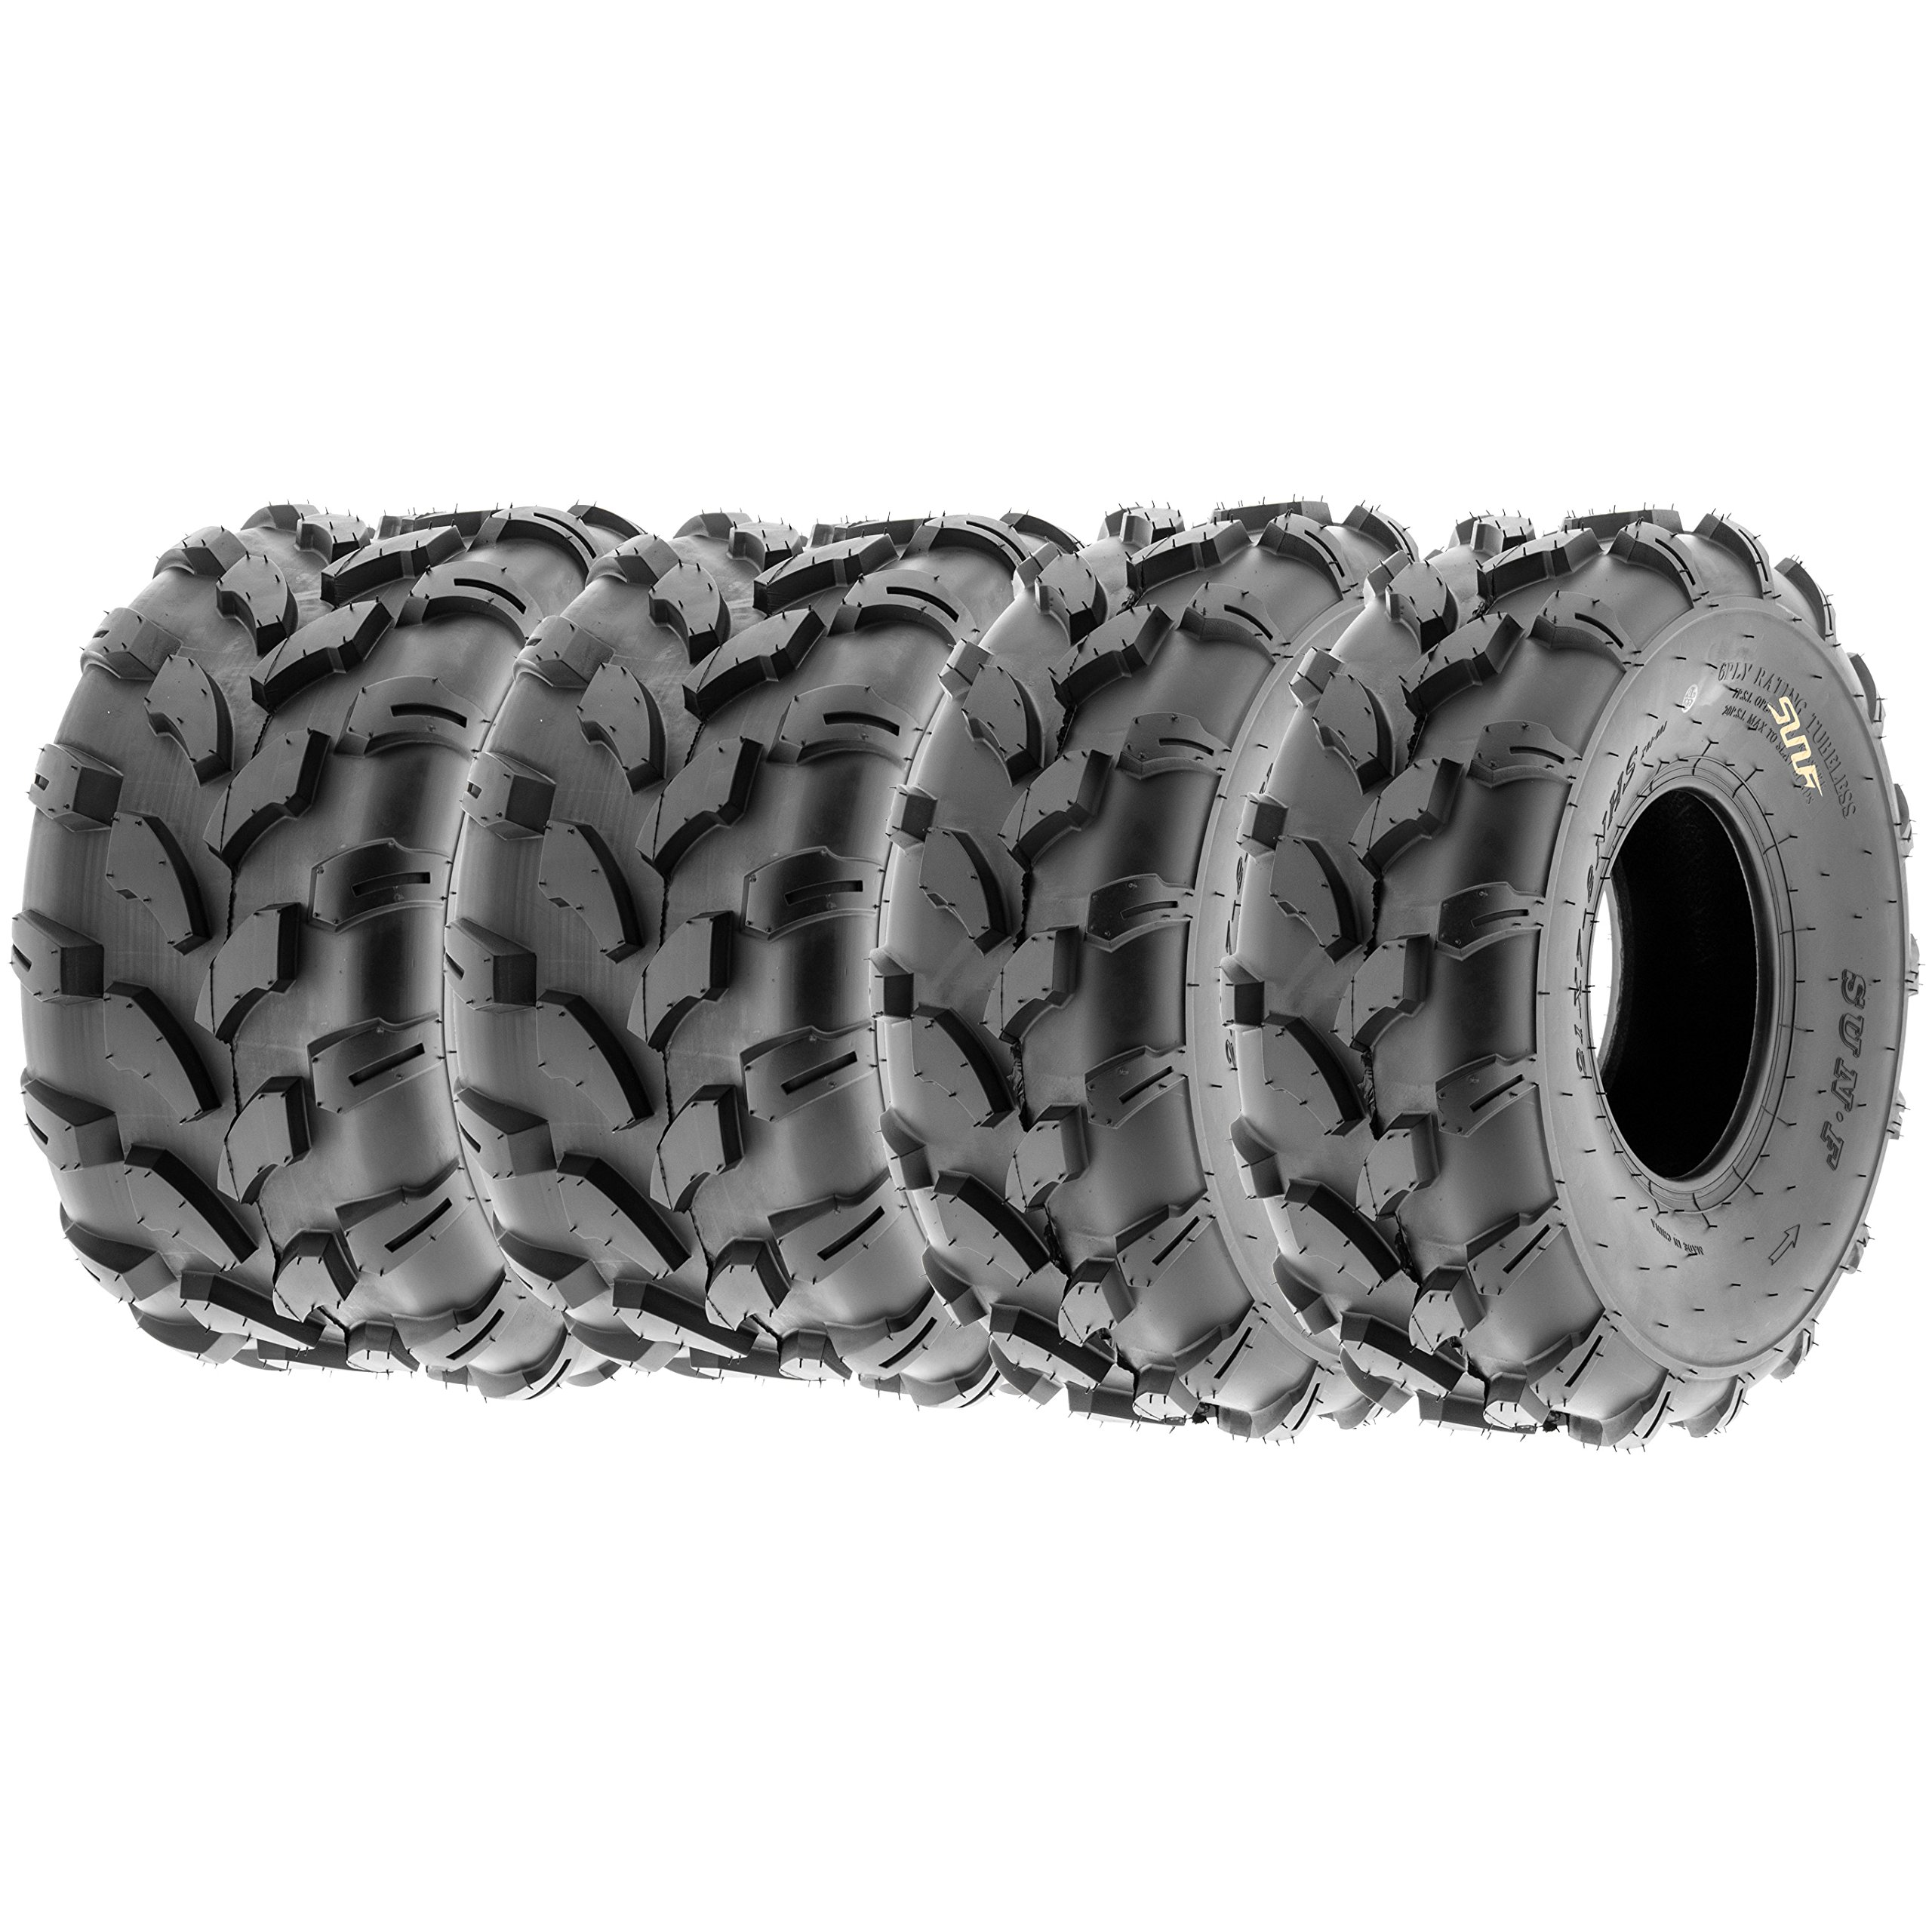 SunF Quad ATV Sport Tires 19x7-8 & 18x9.5-8 4 PR A003 (Full set of 4) by SunF